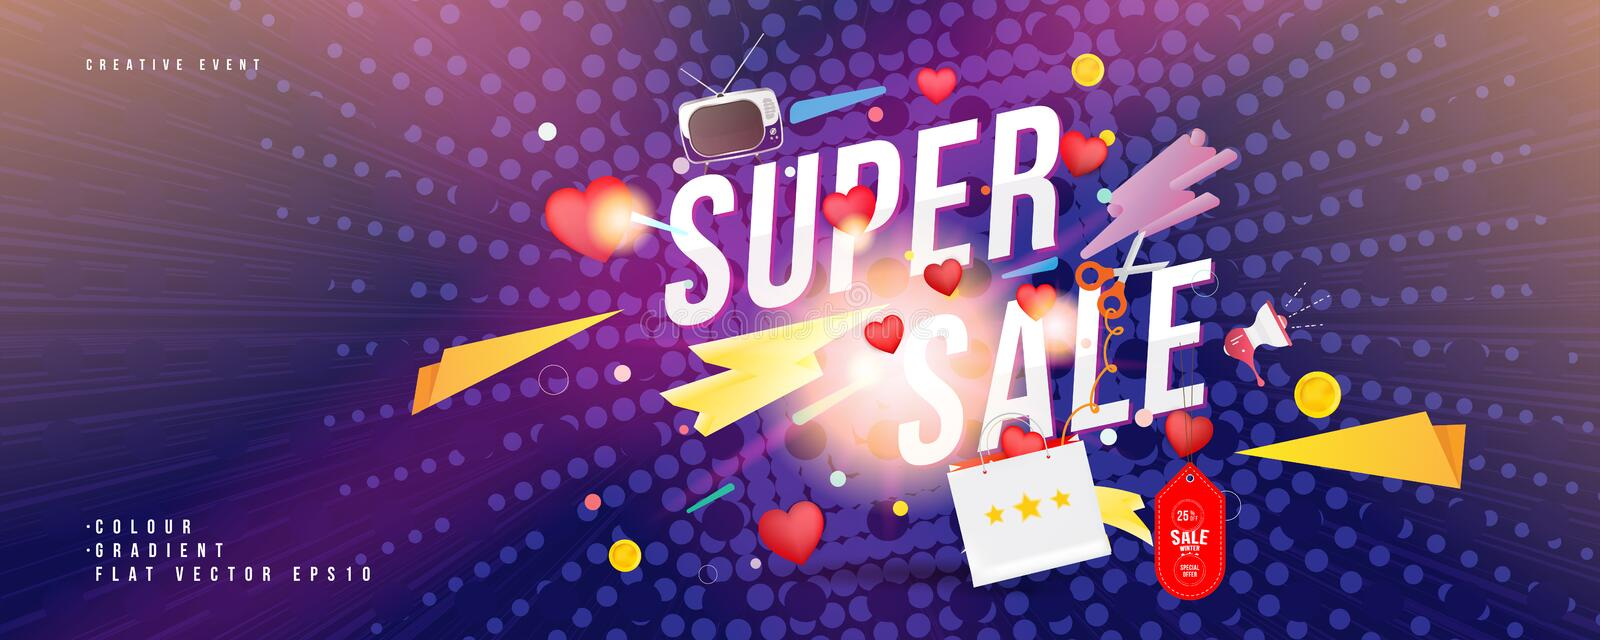 Super sale of 25 off. The concept for big discounts with voluminous text, a retro TV and red hearts on comic book background with. Light effects. Flat vector royalty free illustration